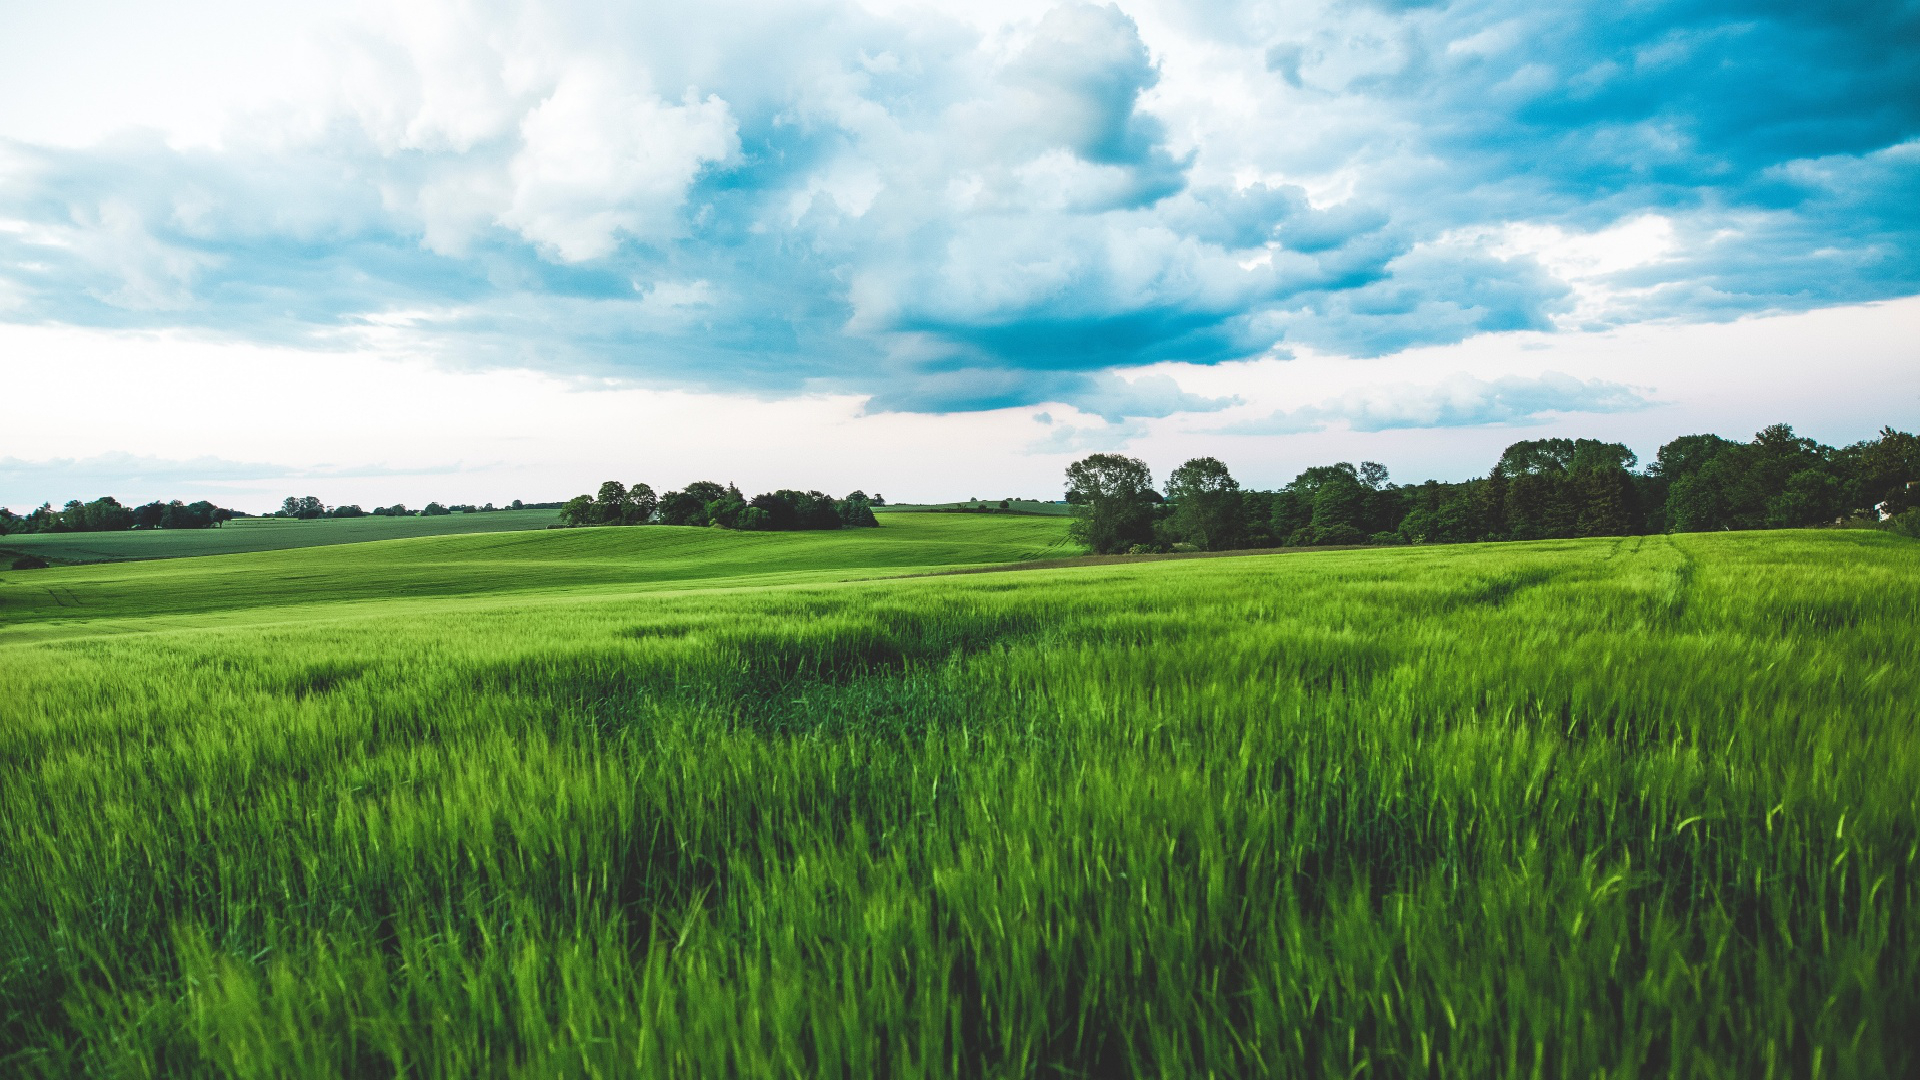 Green Wheat Field Rain Clouds Sky Free Wallpaper Hq Mewallpaper